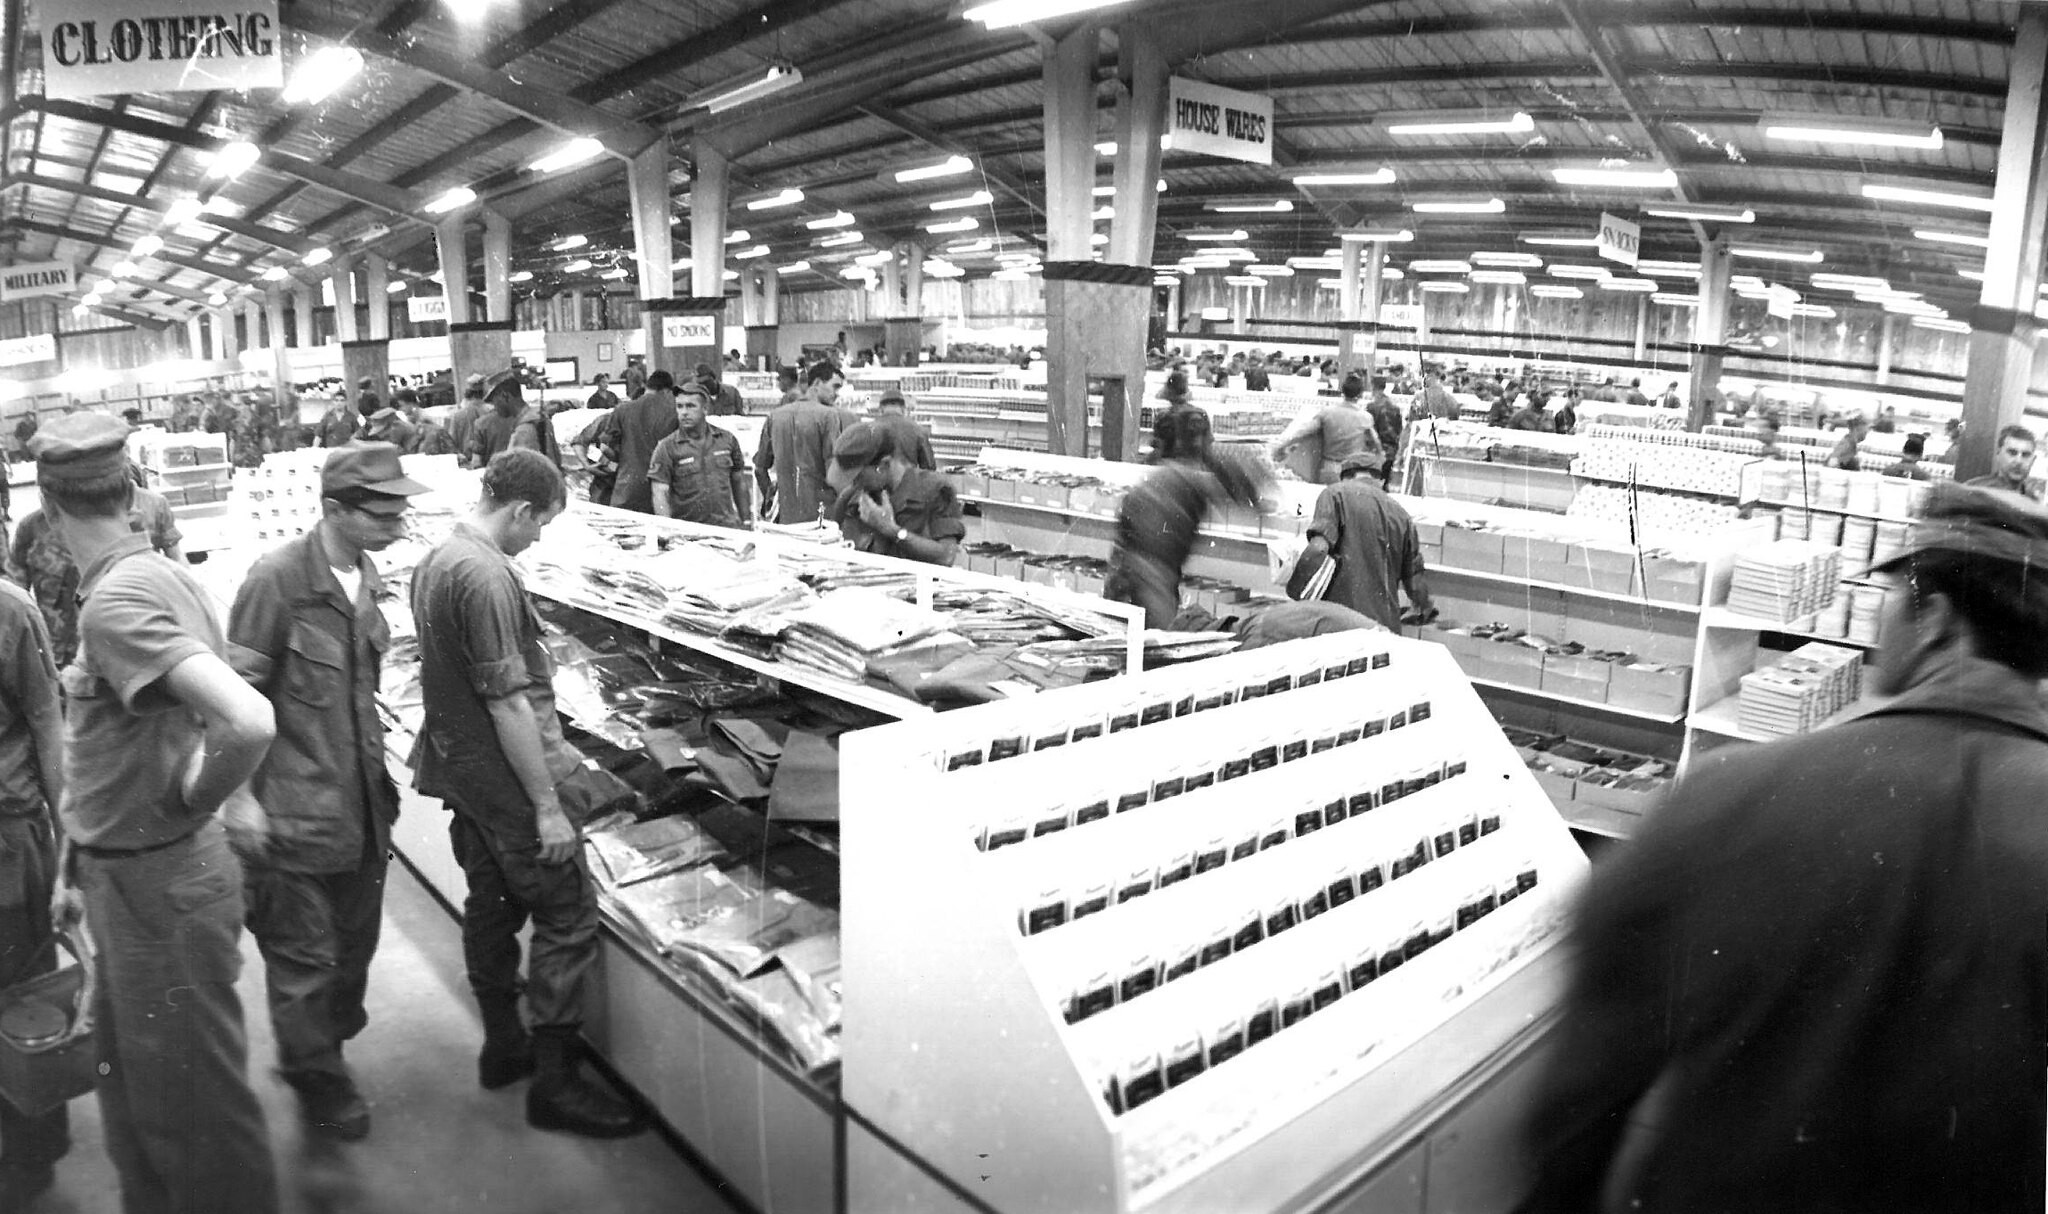 American troops shop at one of over 300 PX stores in Vietnam at the height of the conflict. Credit: With kind permission, AAFES.©